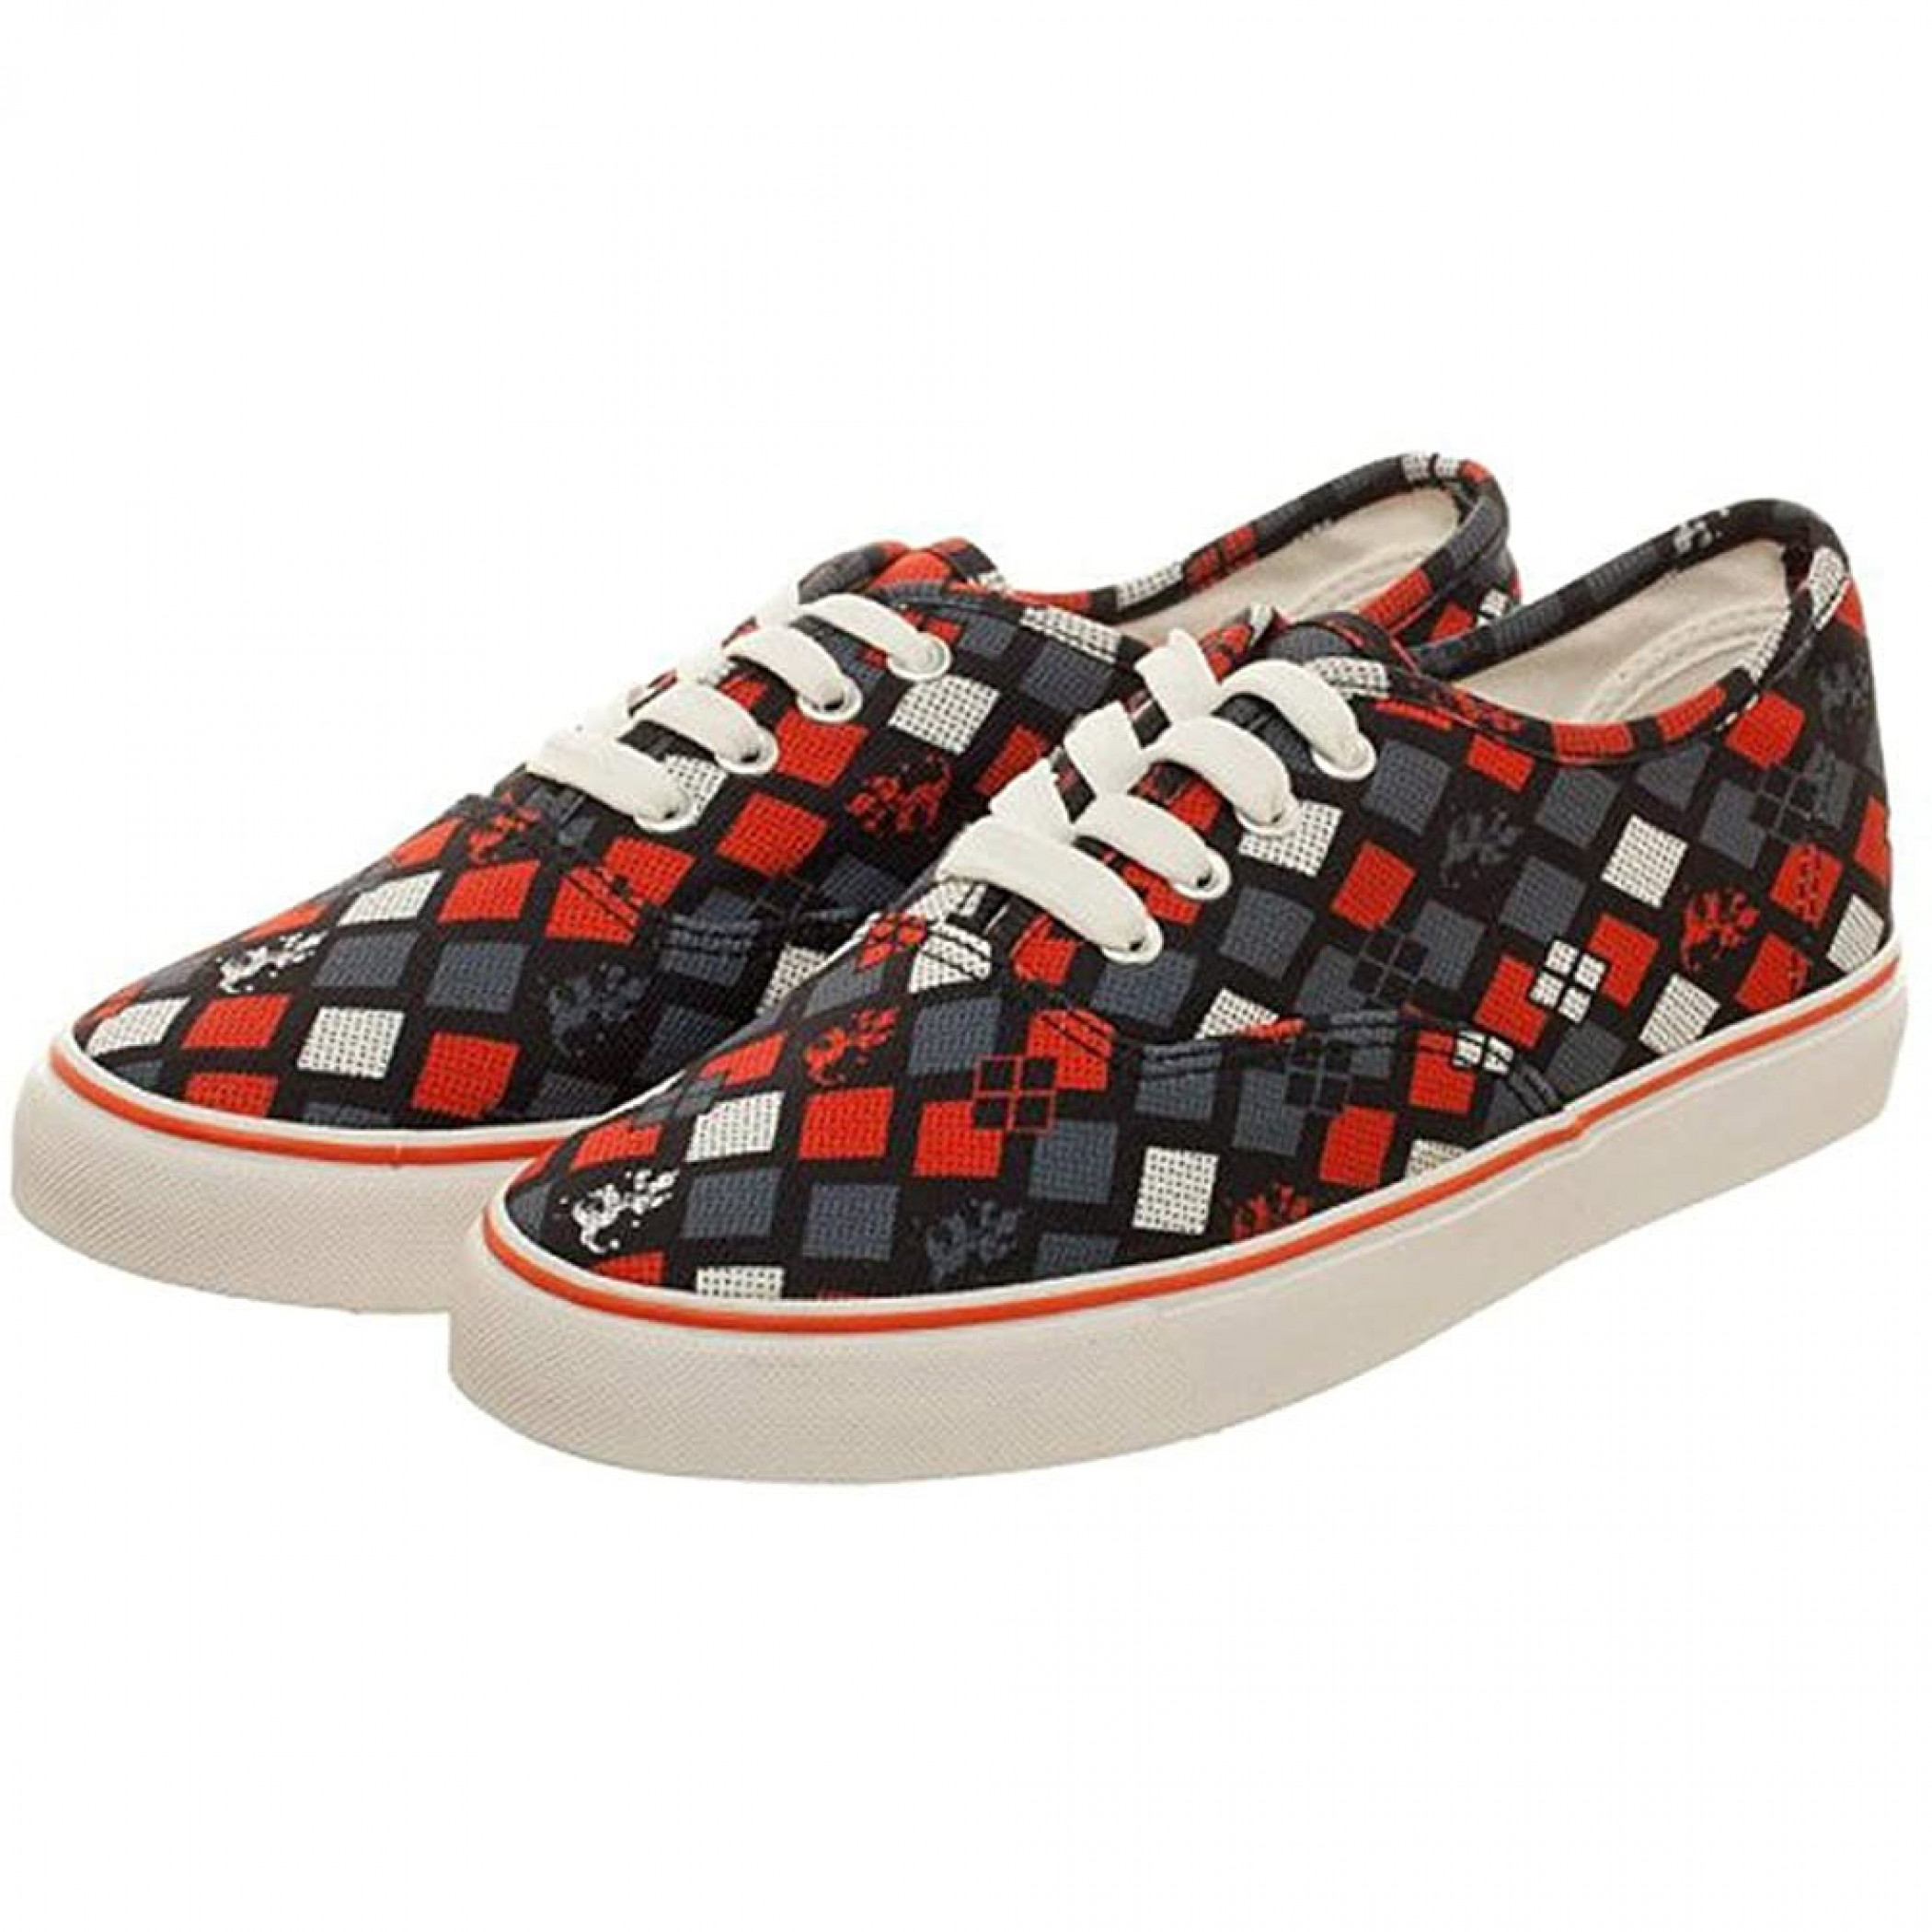 DC Comics Harley Quinn Deck Shoes